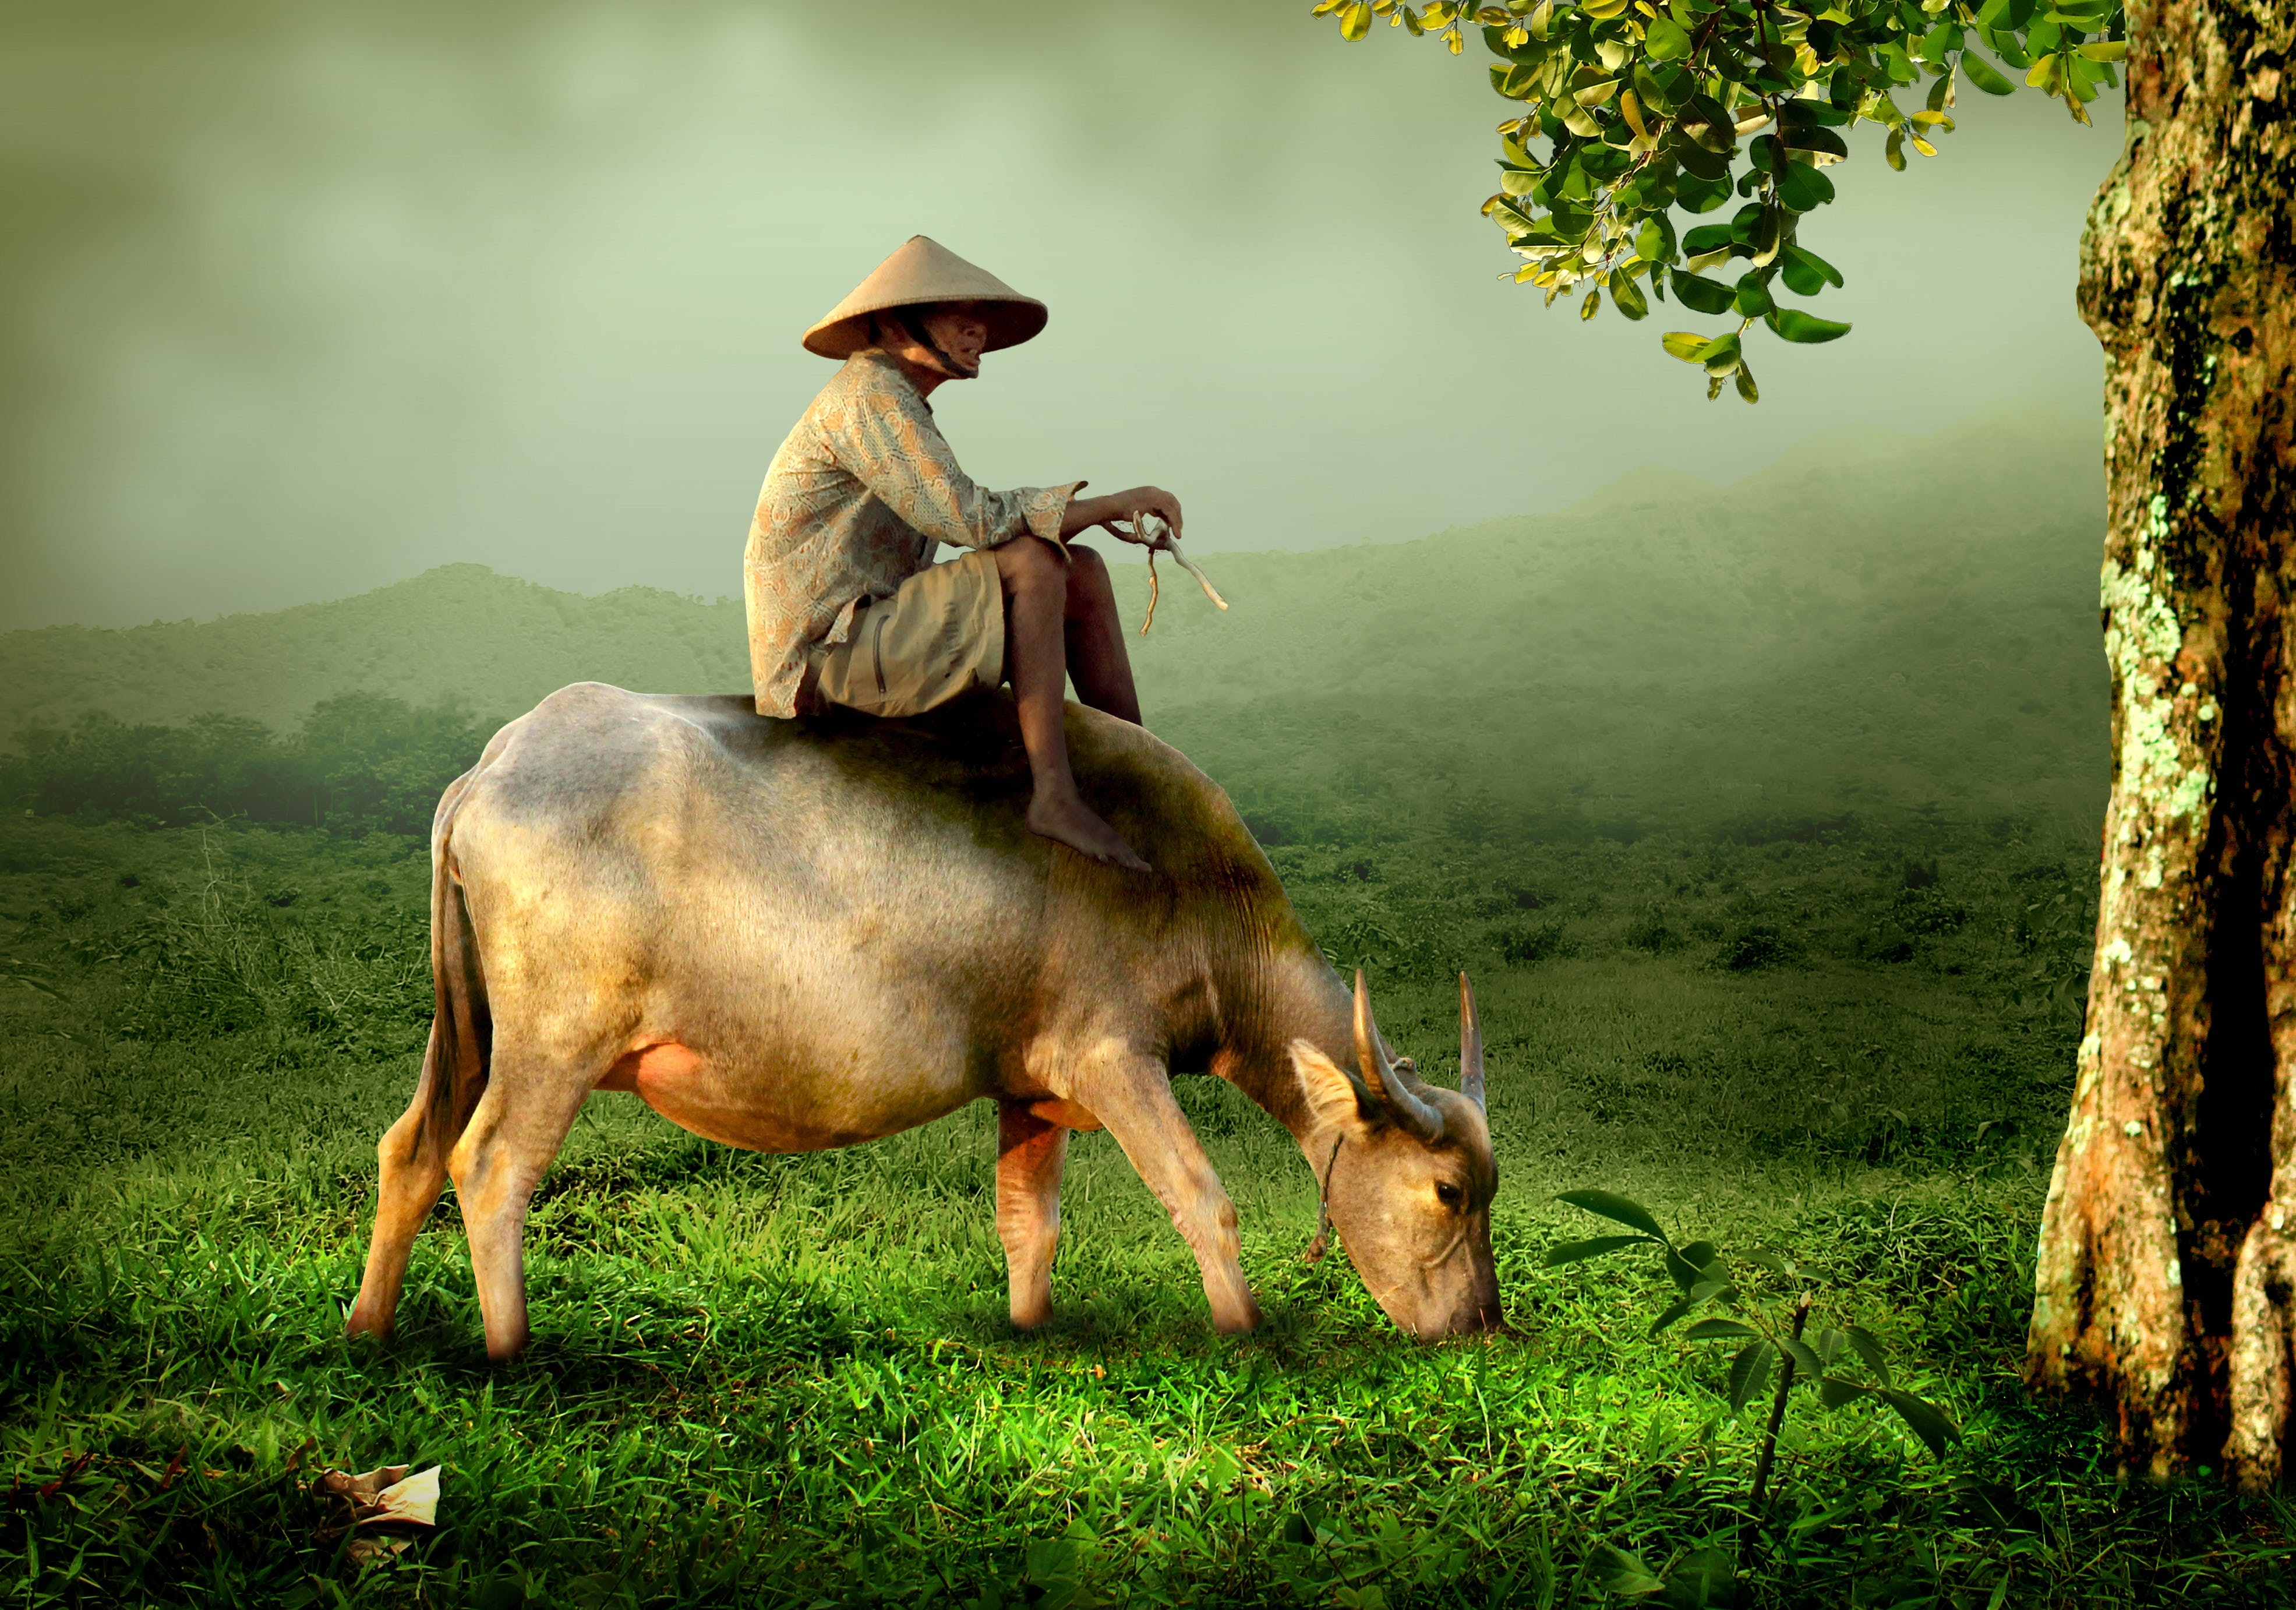 Man Sitting on Gray Buffalo Illustration